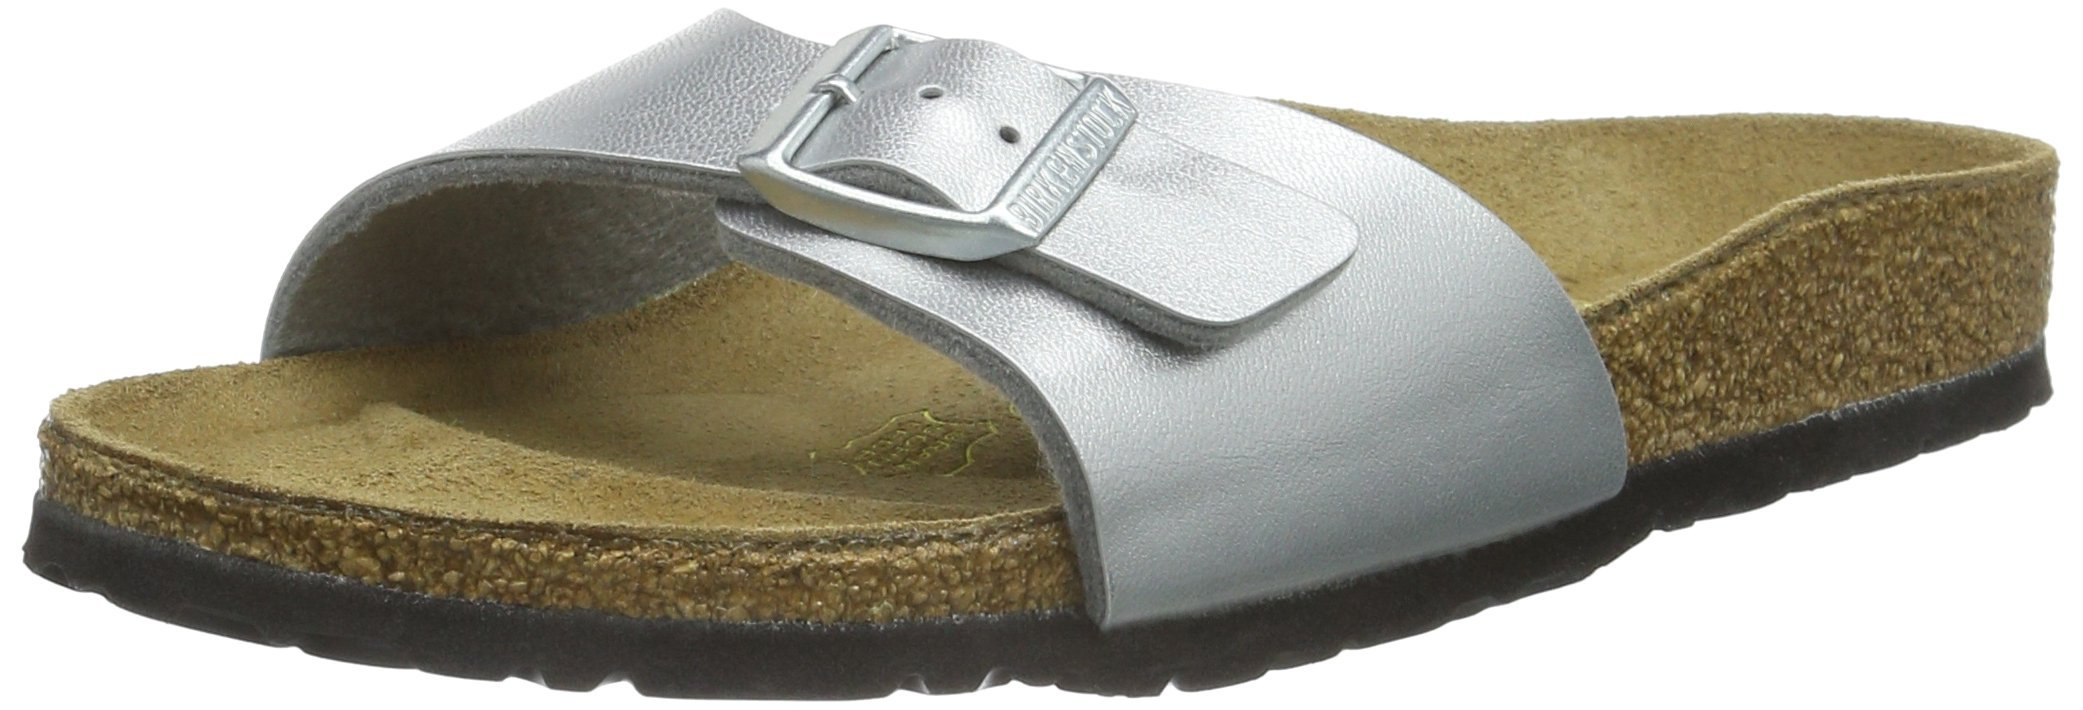 Birkenstock womens Madrid in silver from Birko-Flor Sandals 35.0 EU N